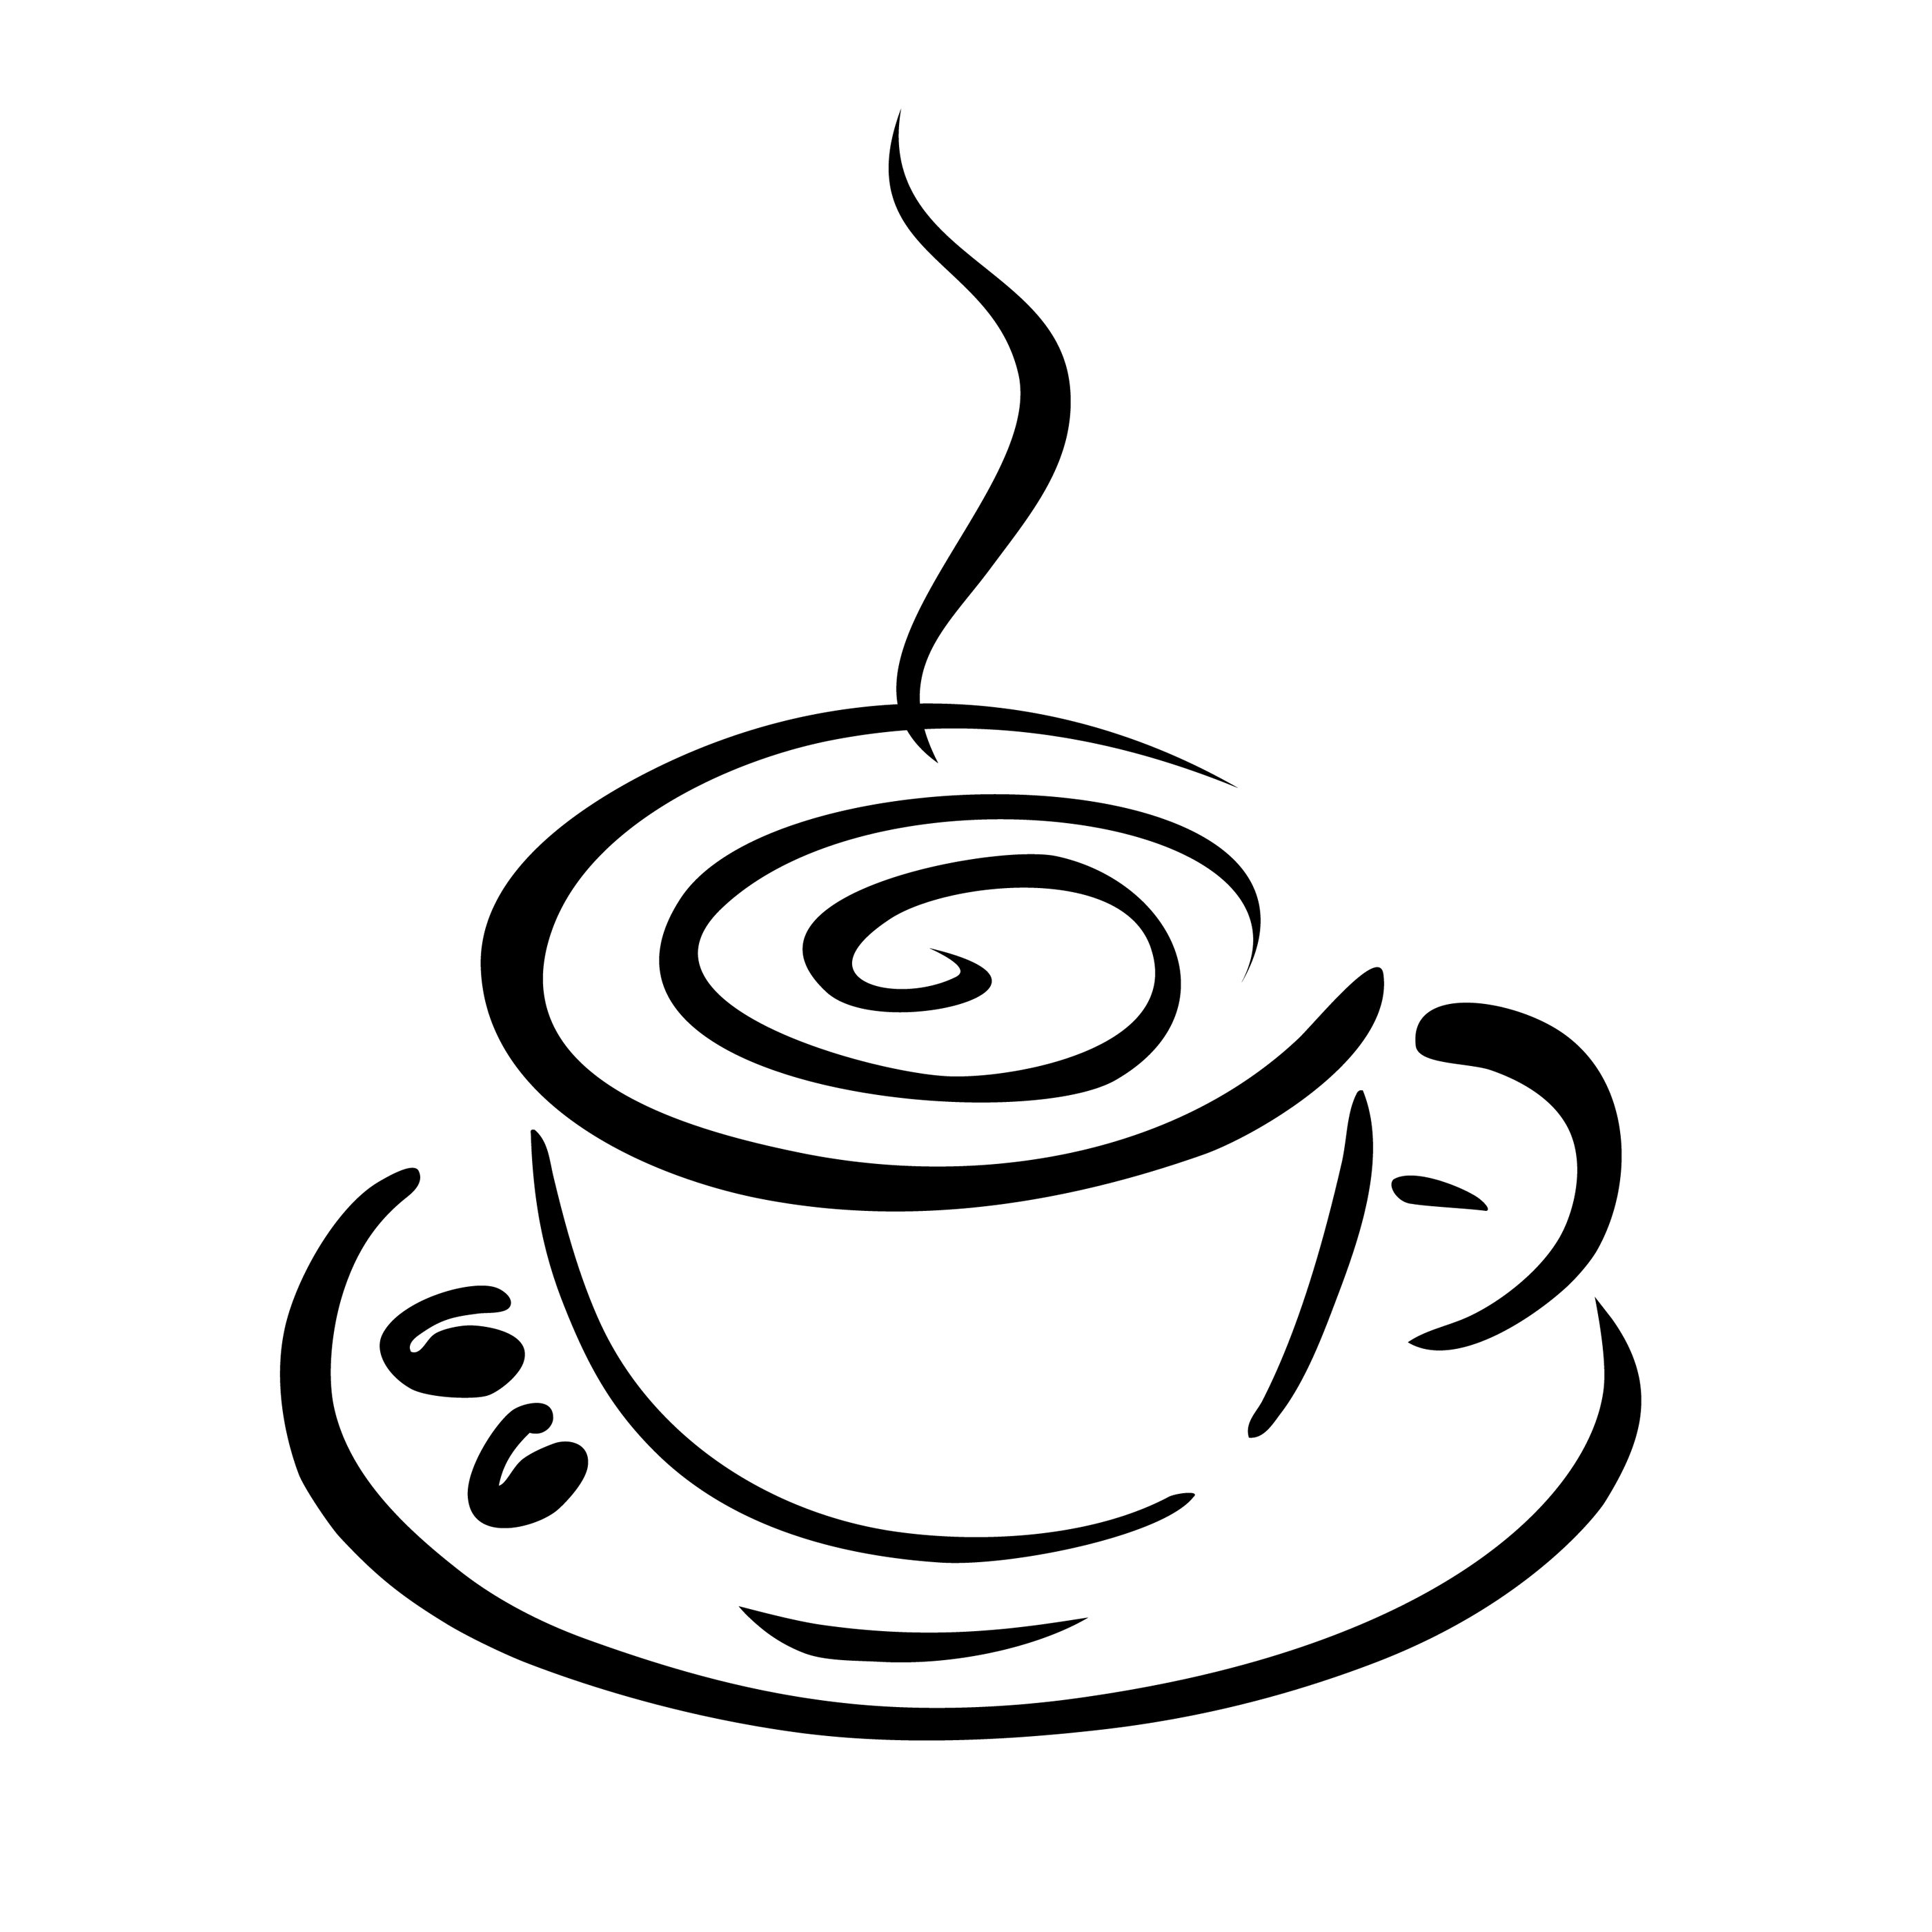 clip library Coffee clipart free. Clip art images clipartbarn.